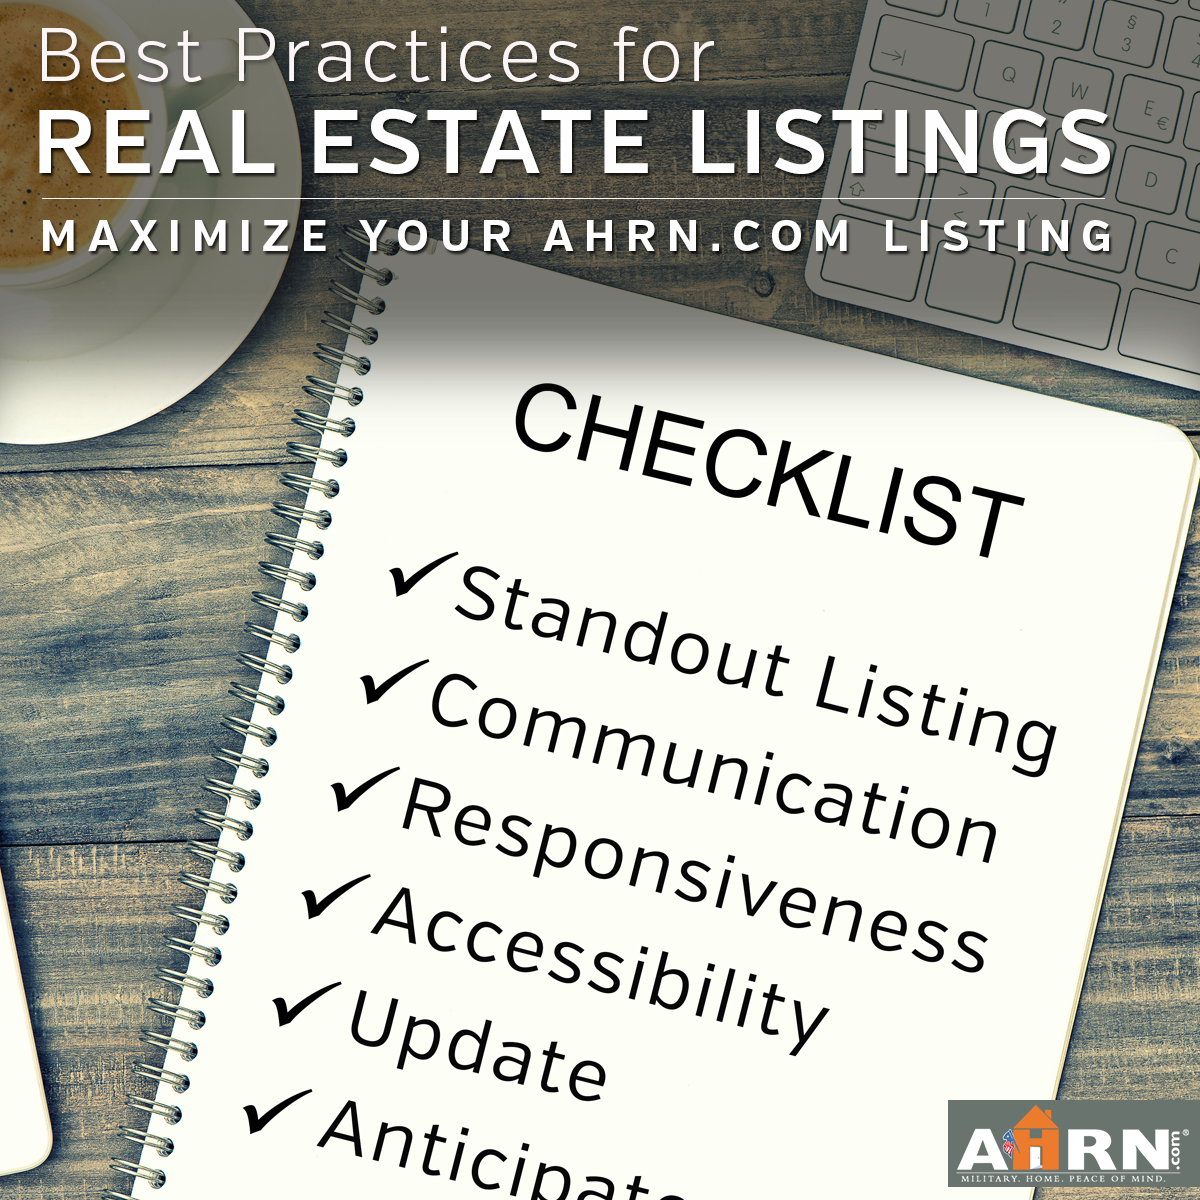 Free Home Rental Listings: Best Practices For Real Estate Listings